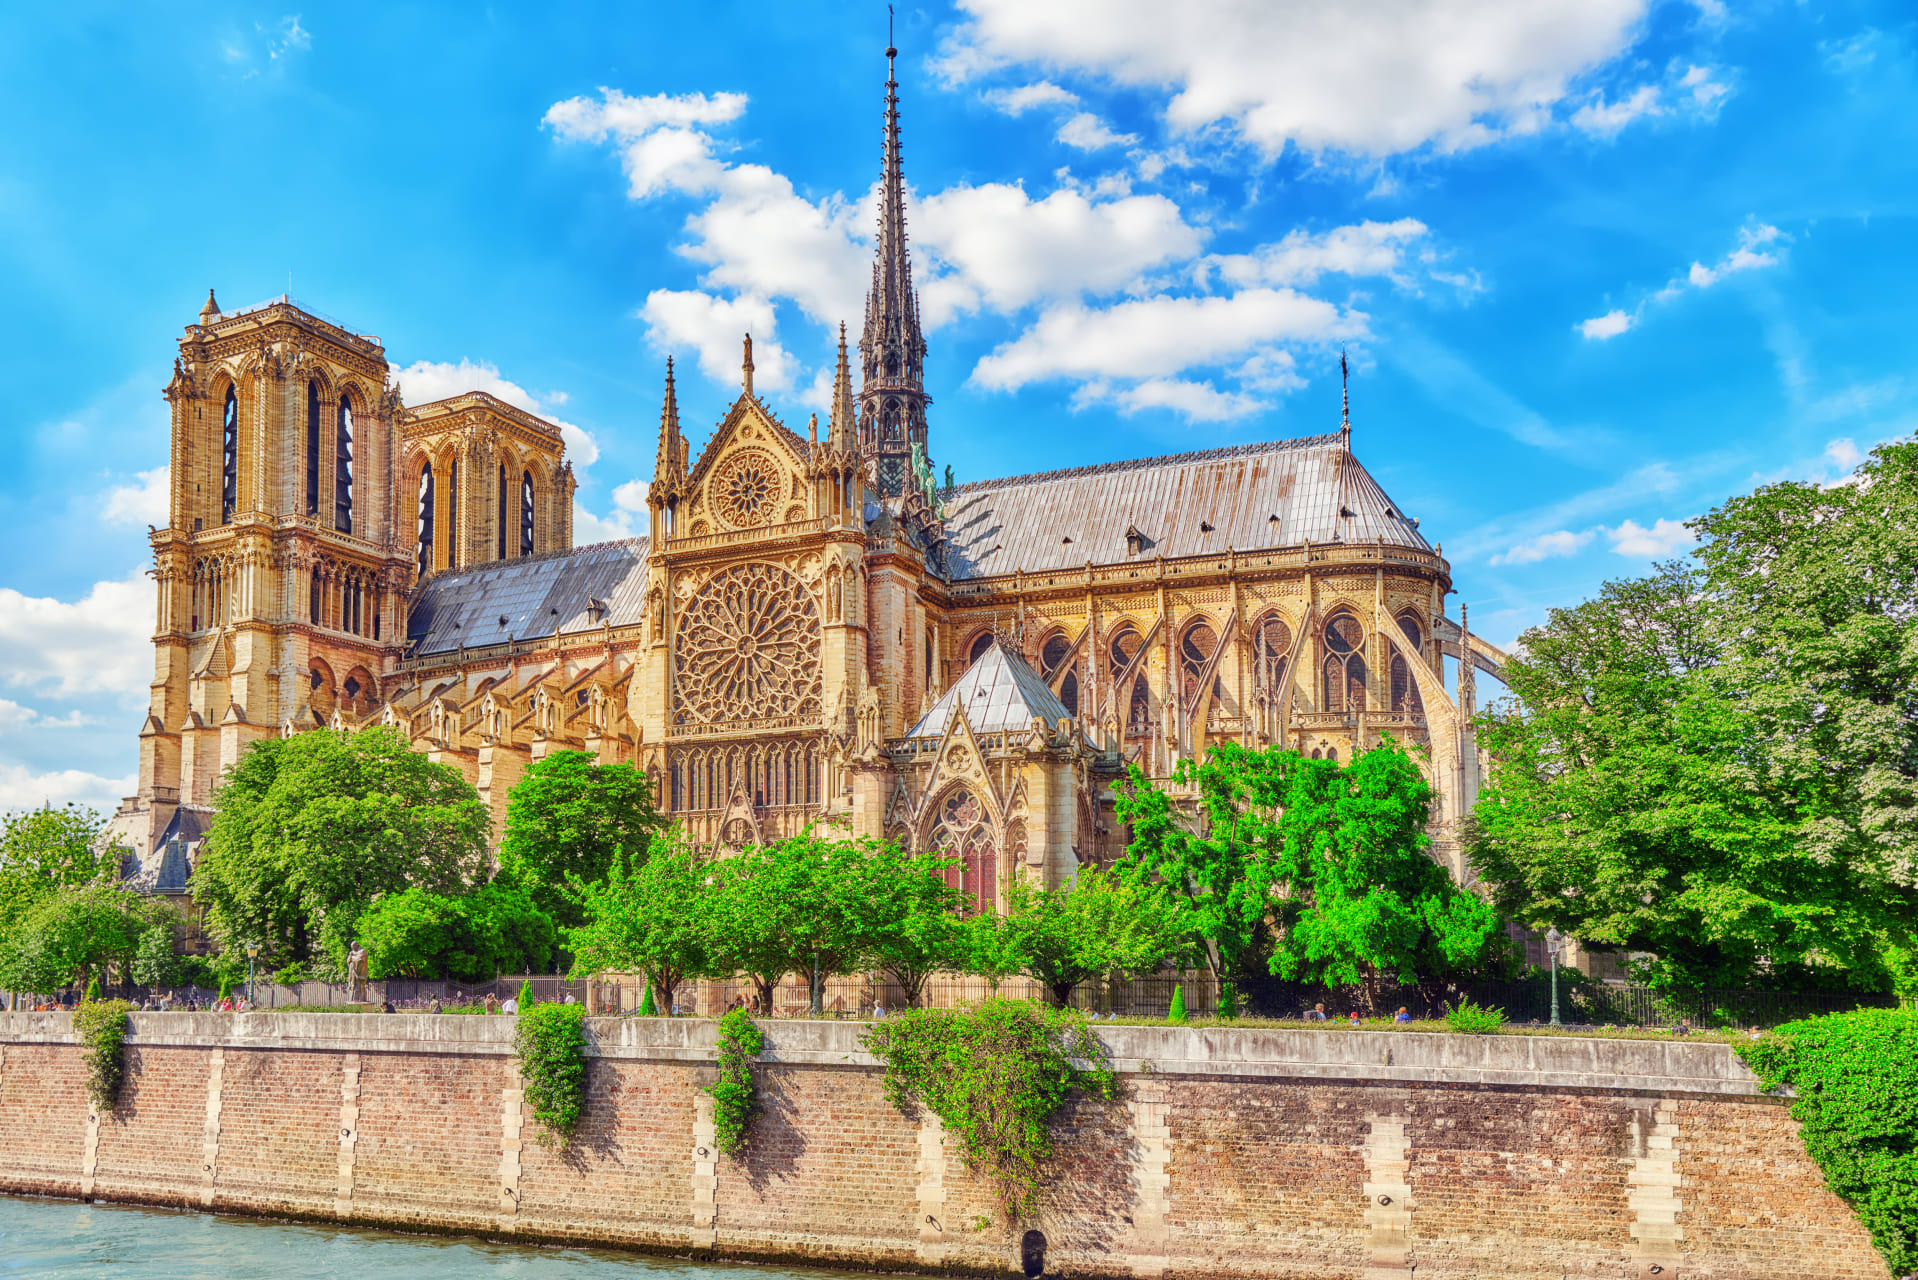 Paris - Over the Water: On the river Seine (Left Bank + Notre Dame)